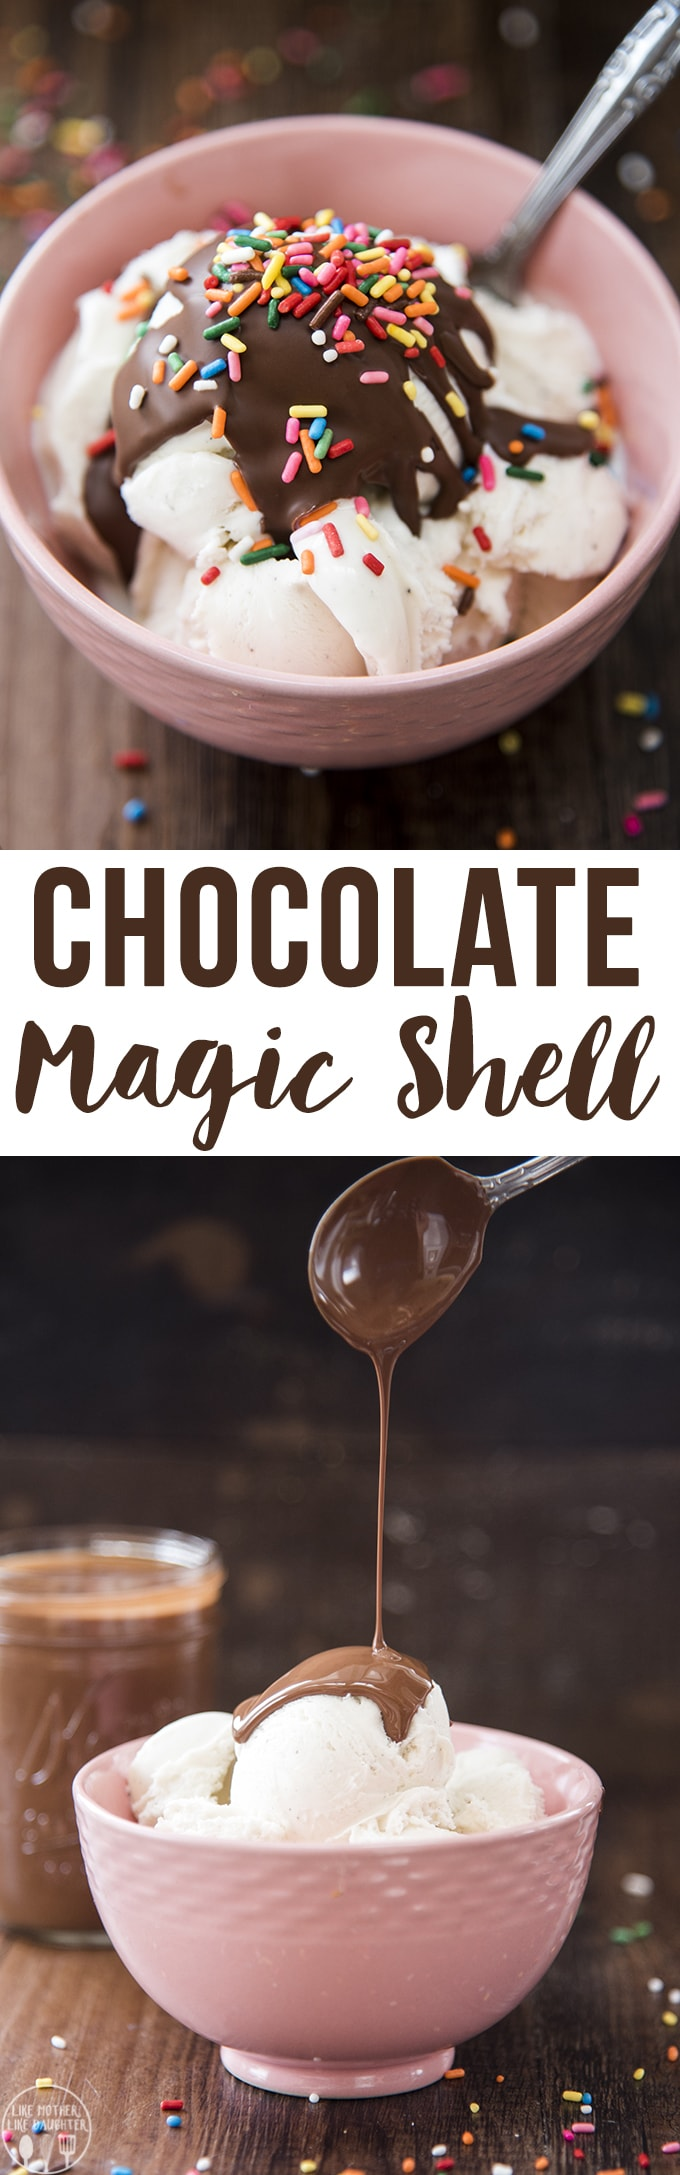 Homemade chocolate magic shells is only two ingredients and only takes a couple minutes to make. Its the best ice cream topping!